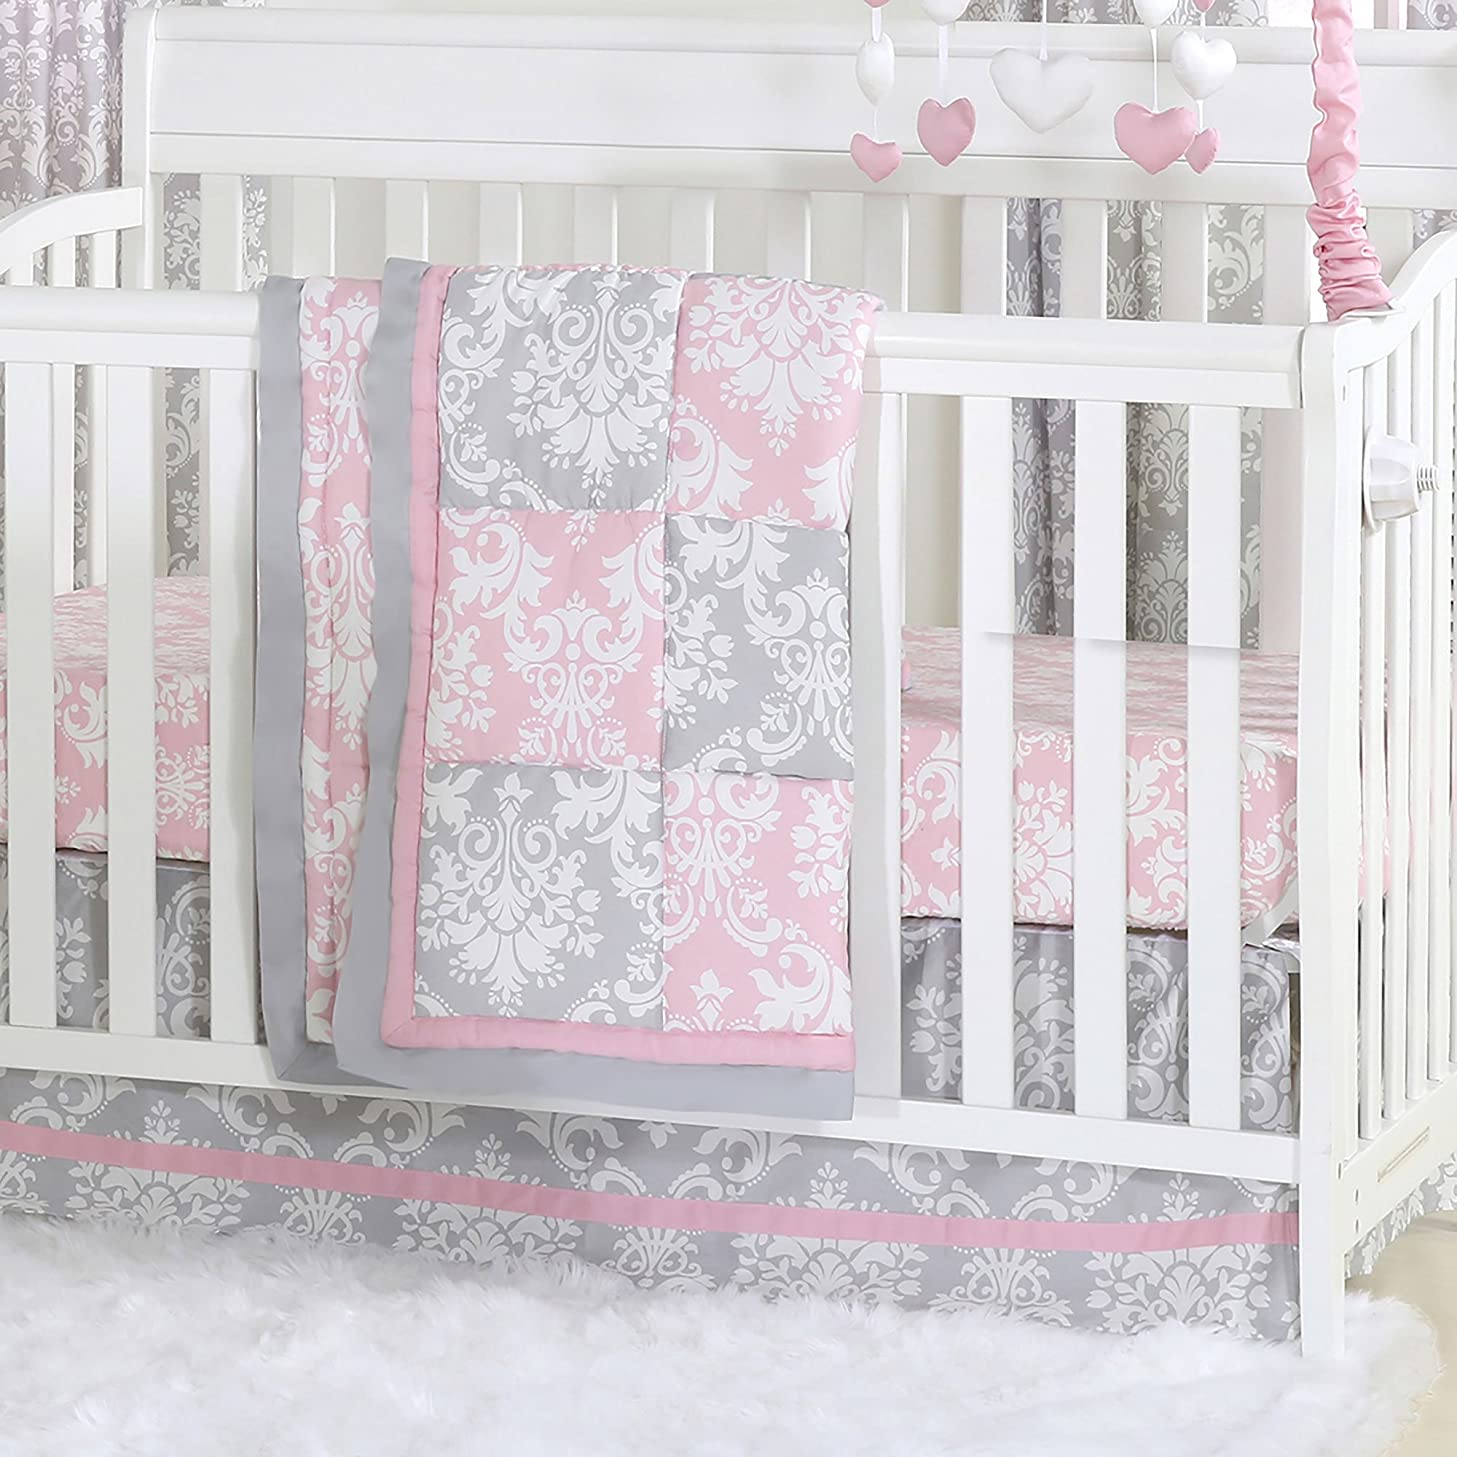 Pink and Grey Damask Patchwork 3 Piece Baby Crib Bedding Set by The Peanut Shell